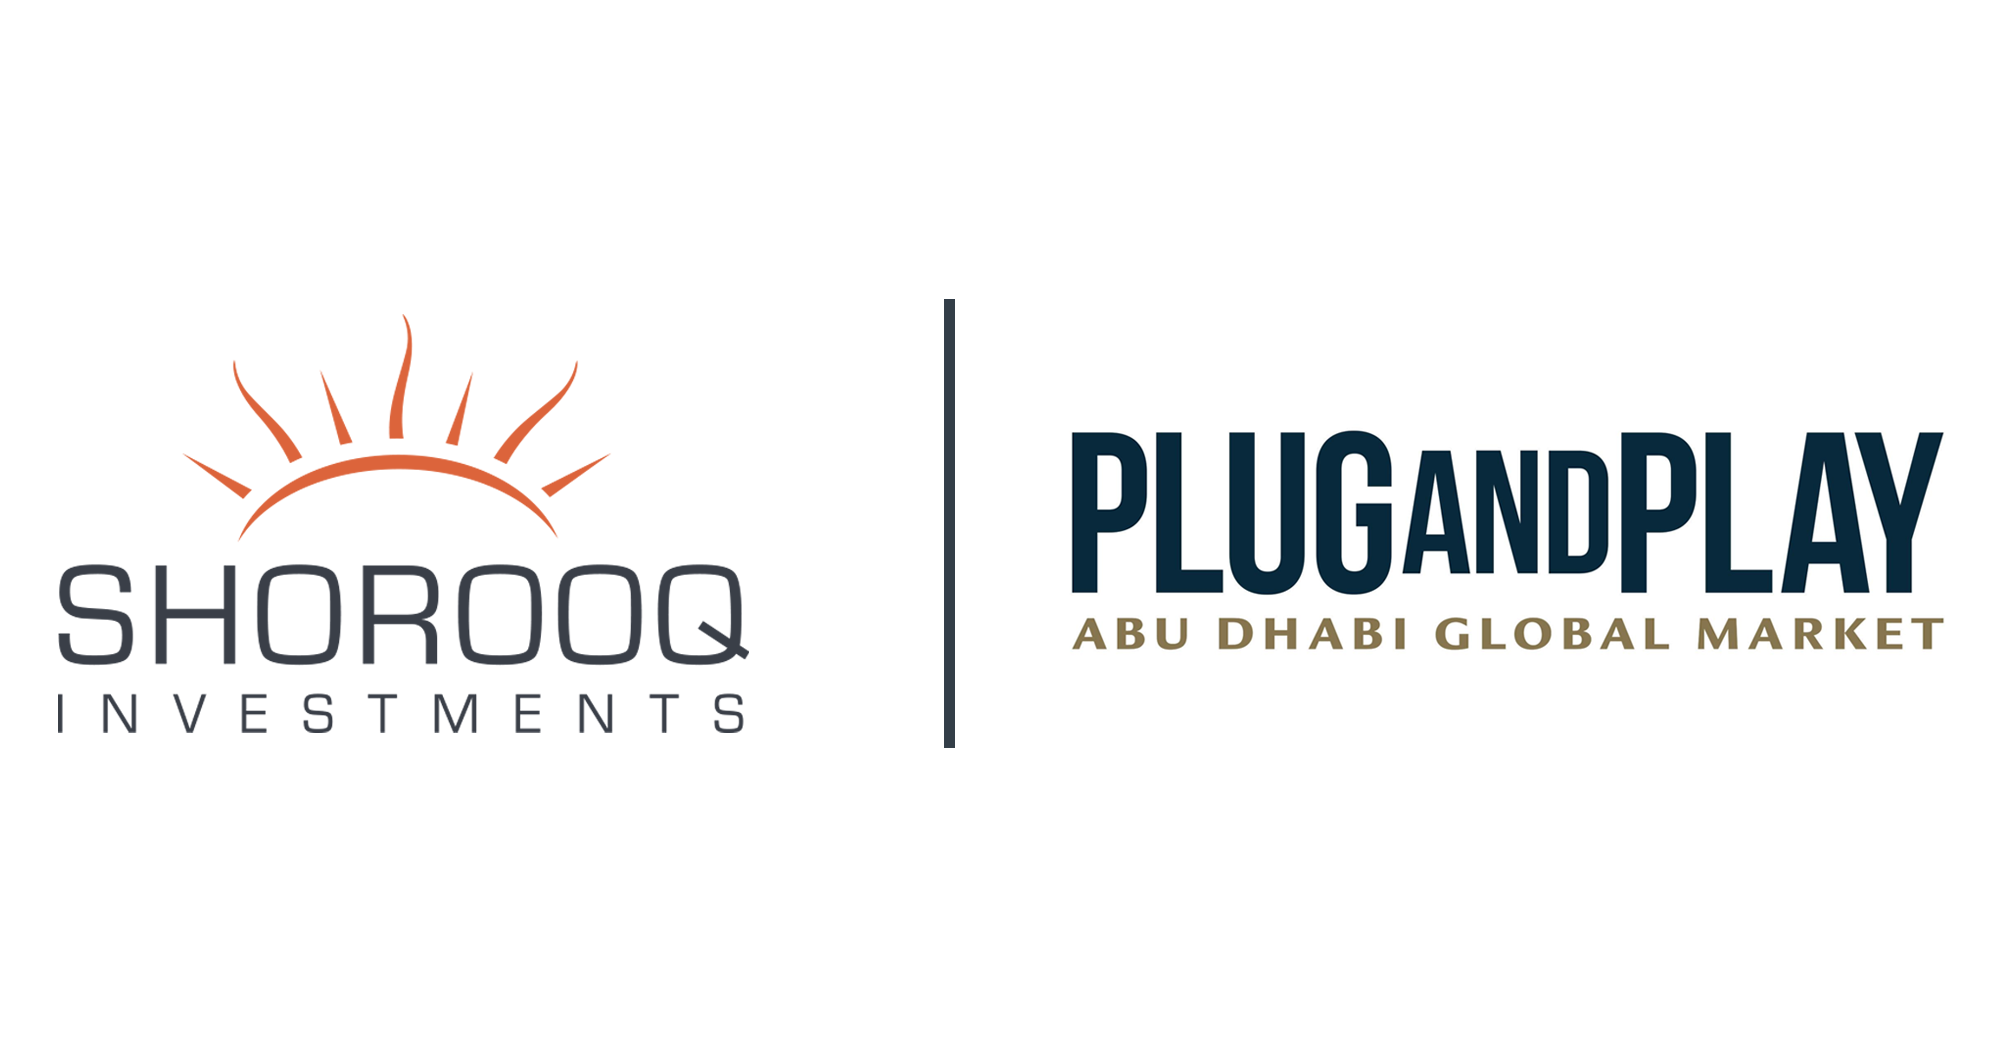 Shorooq Investments and Plug and Play ADGM announce Partnership to accelerate Technological Innovation in Abu Dhabi and the broader MENA region